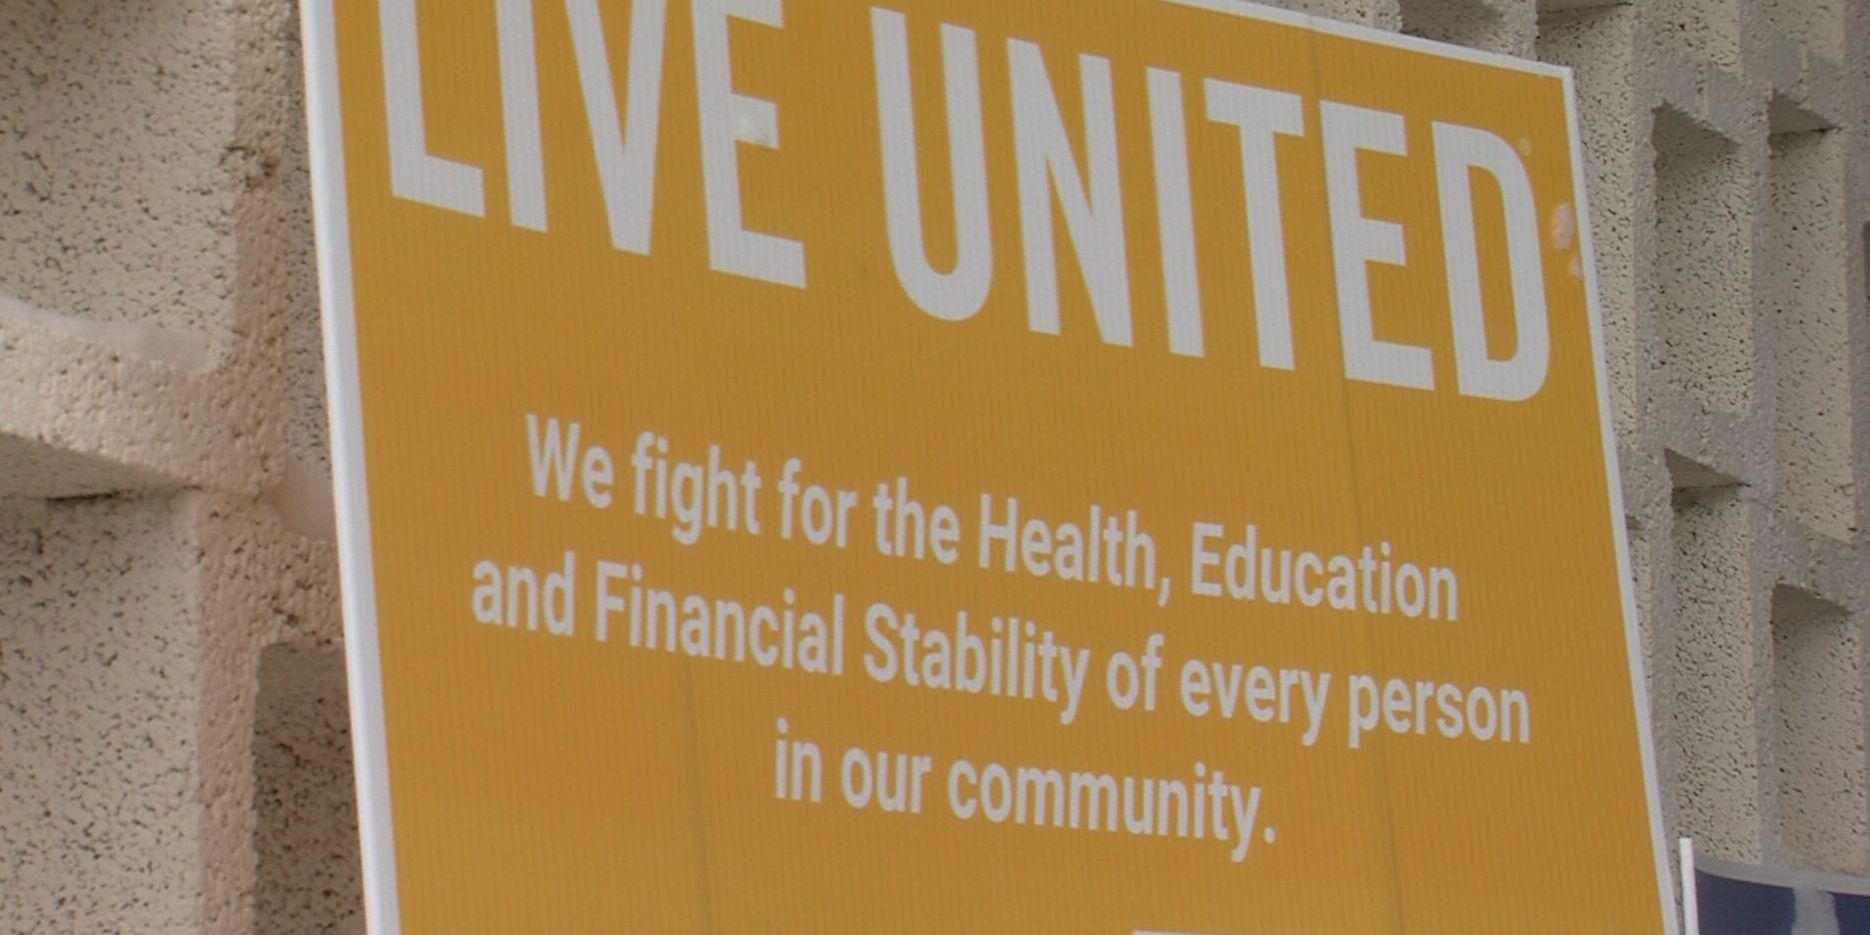 United Way: 2018 is a critical campaign year